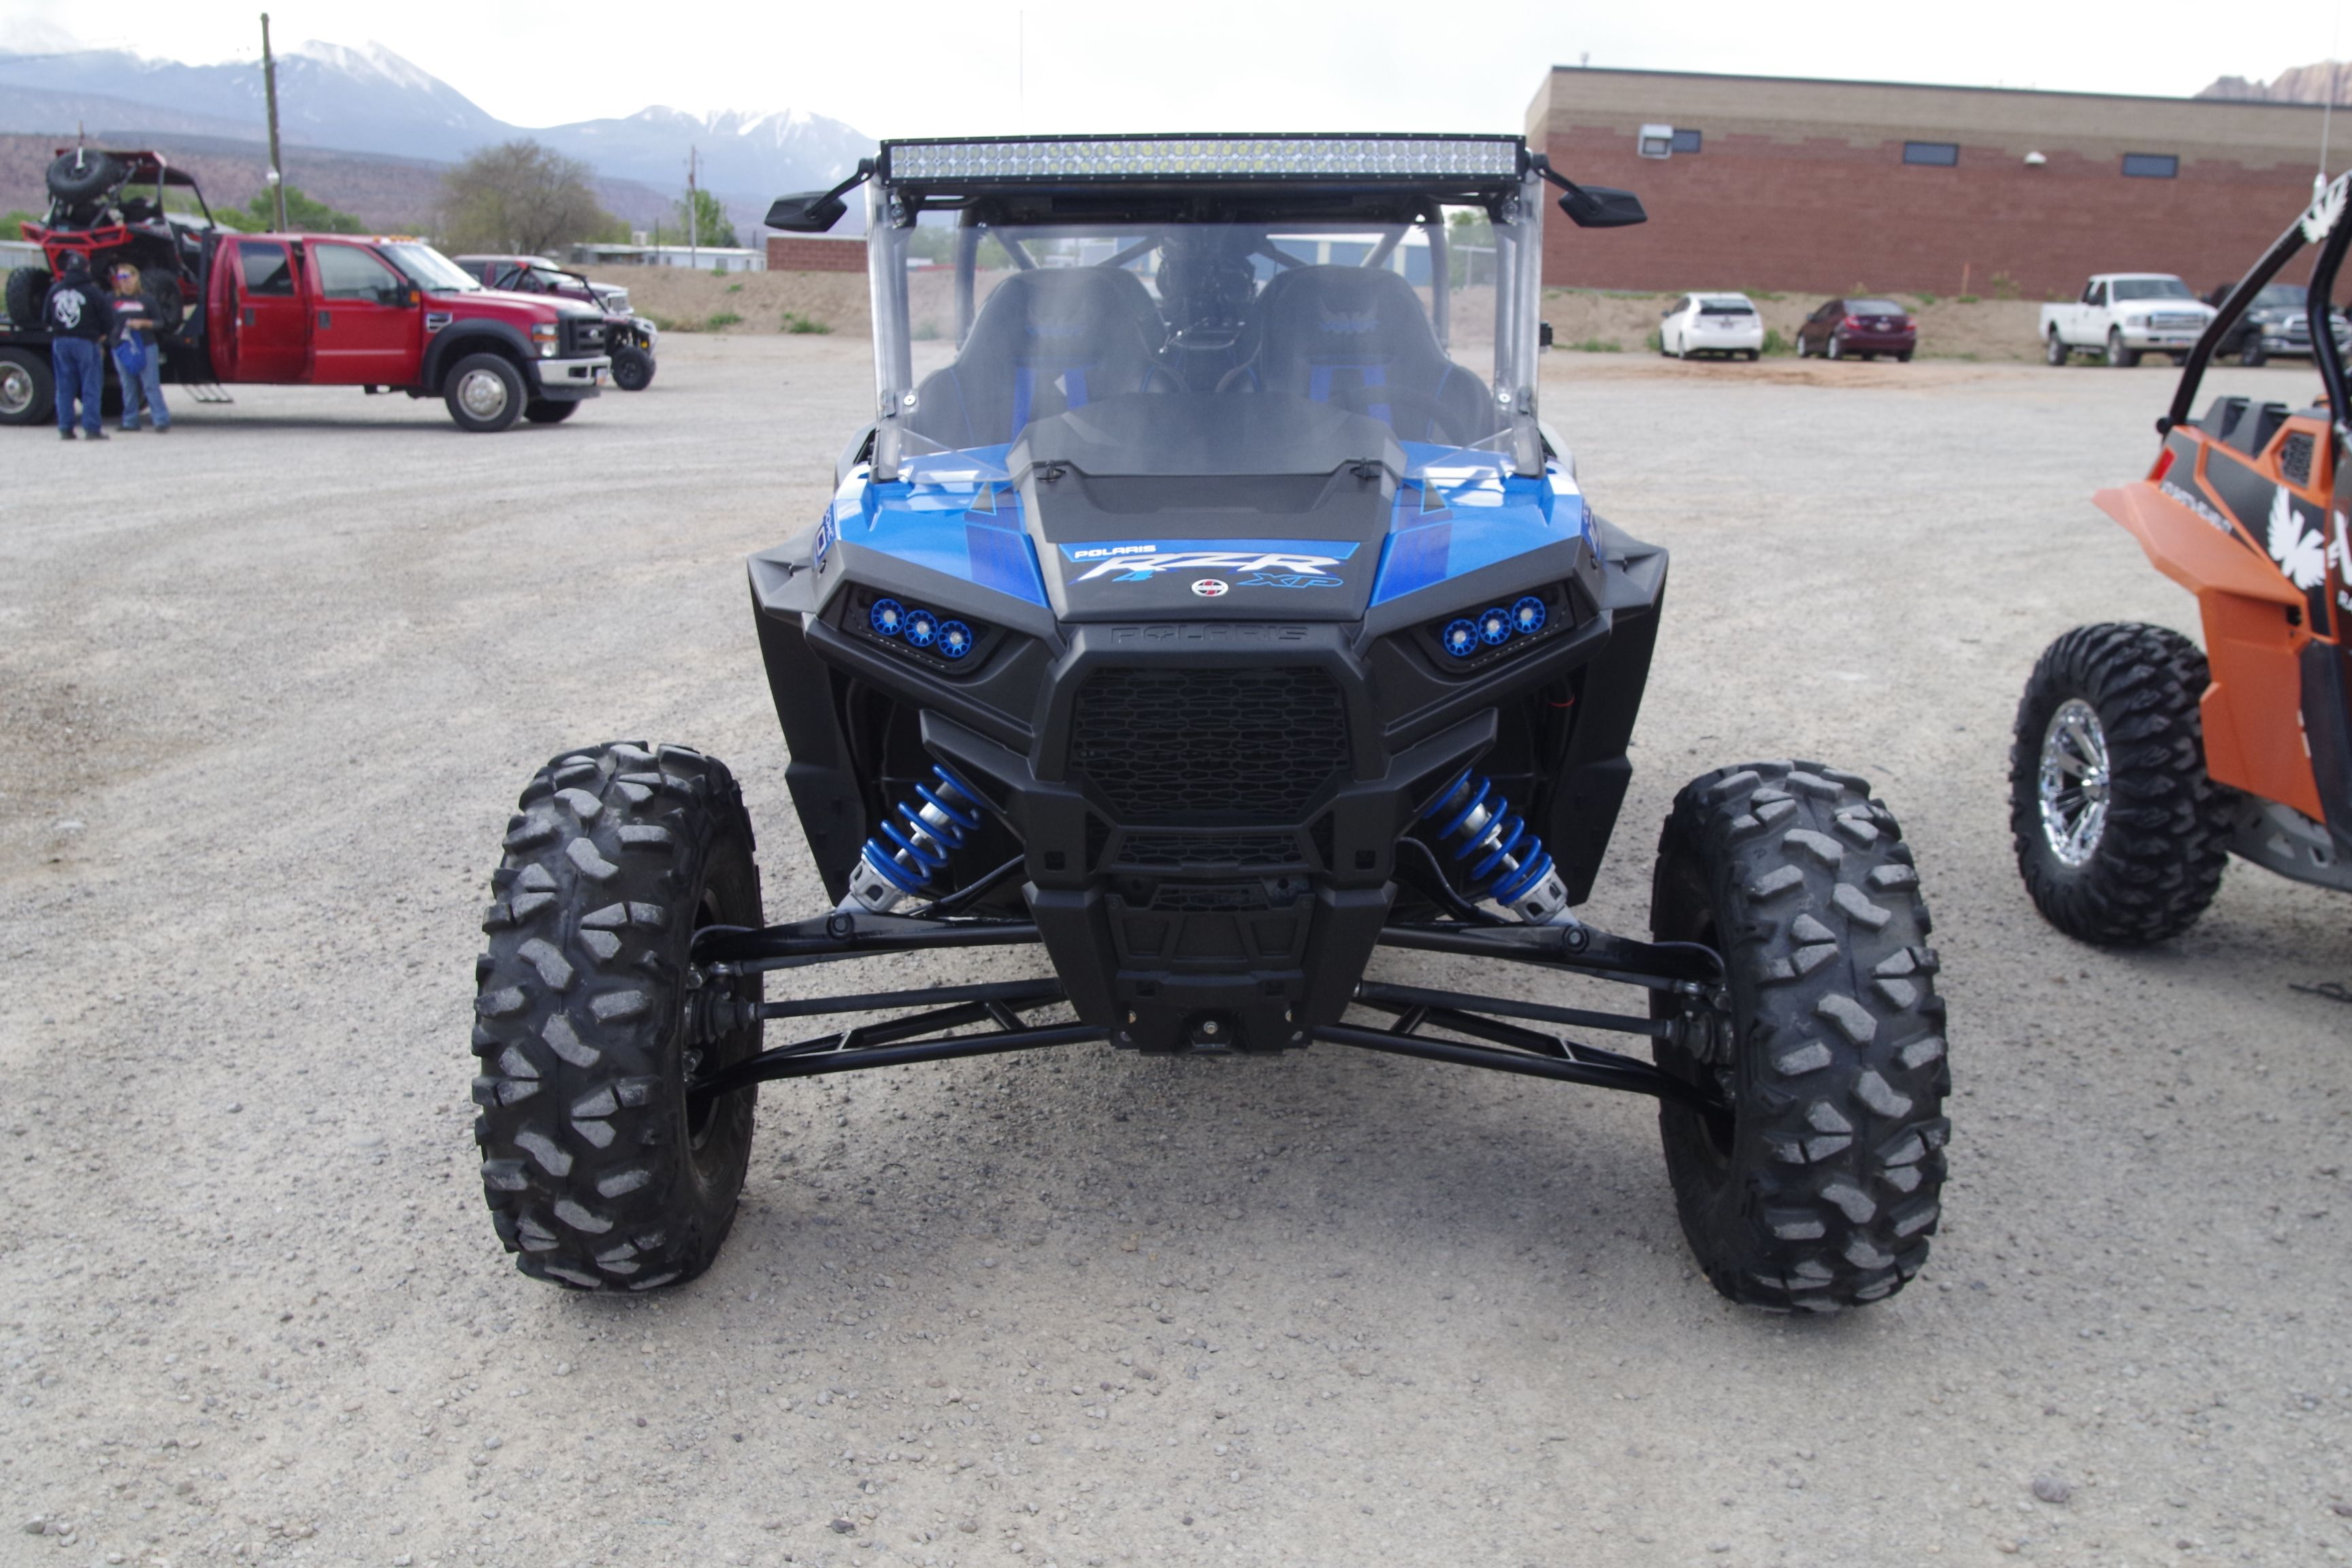 Polaris Rzr Xp 1000 With Lone Star Long Travel 4 Seat Coupe Cage With Roof Windshield 42 Led Light Bar And Side Mir Polaris Rzr Xp Polaris Rzr Xp 1000 Rzr